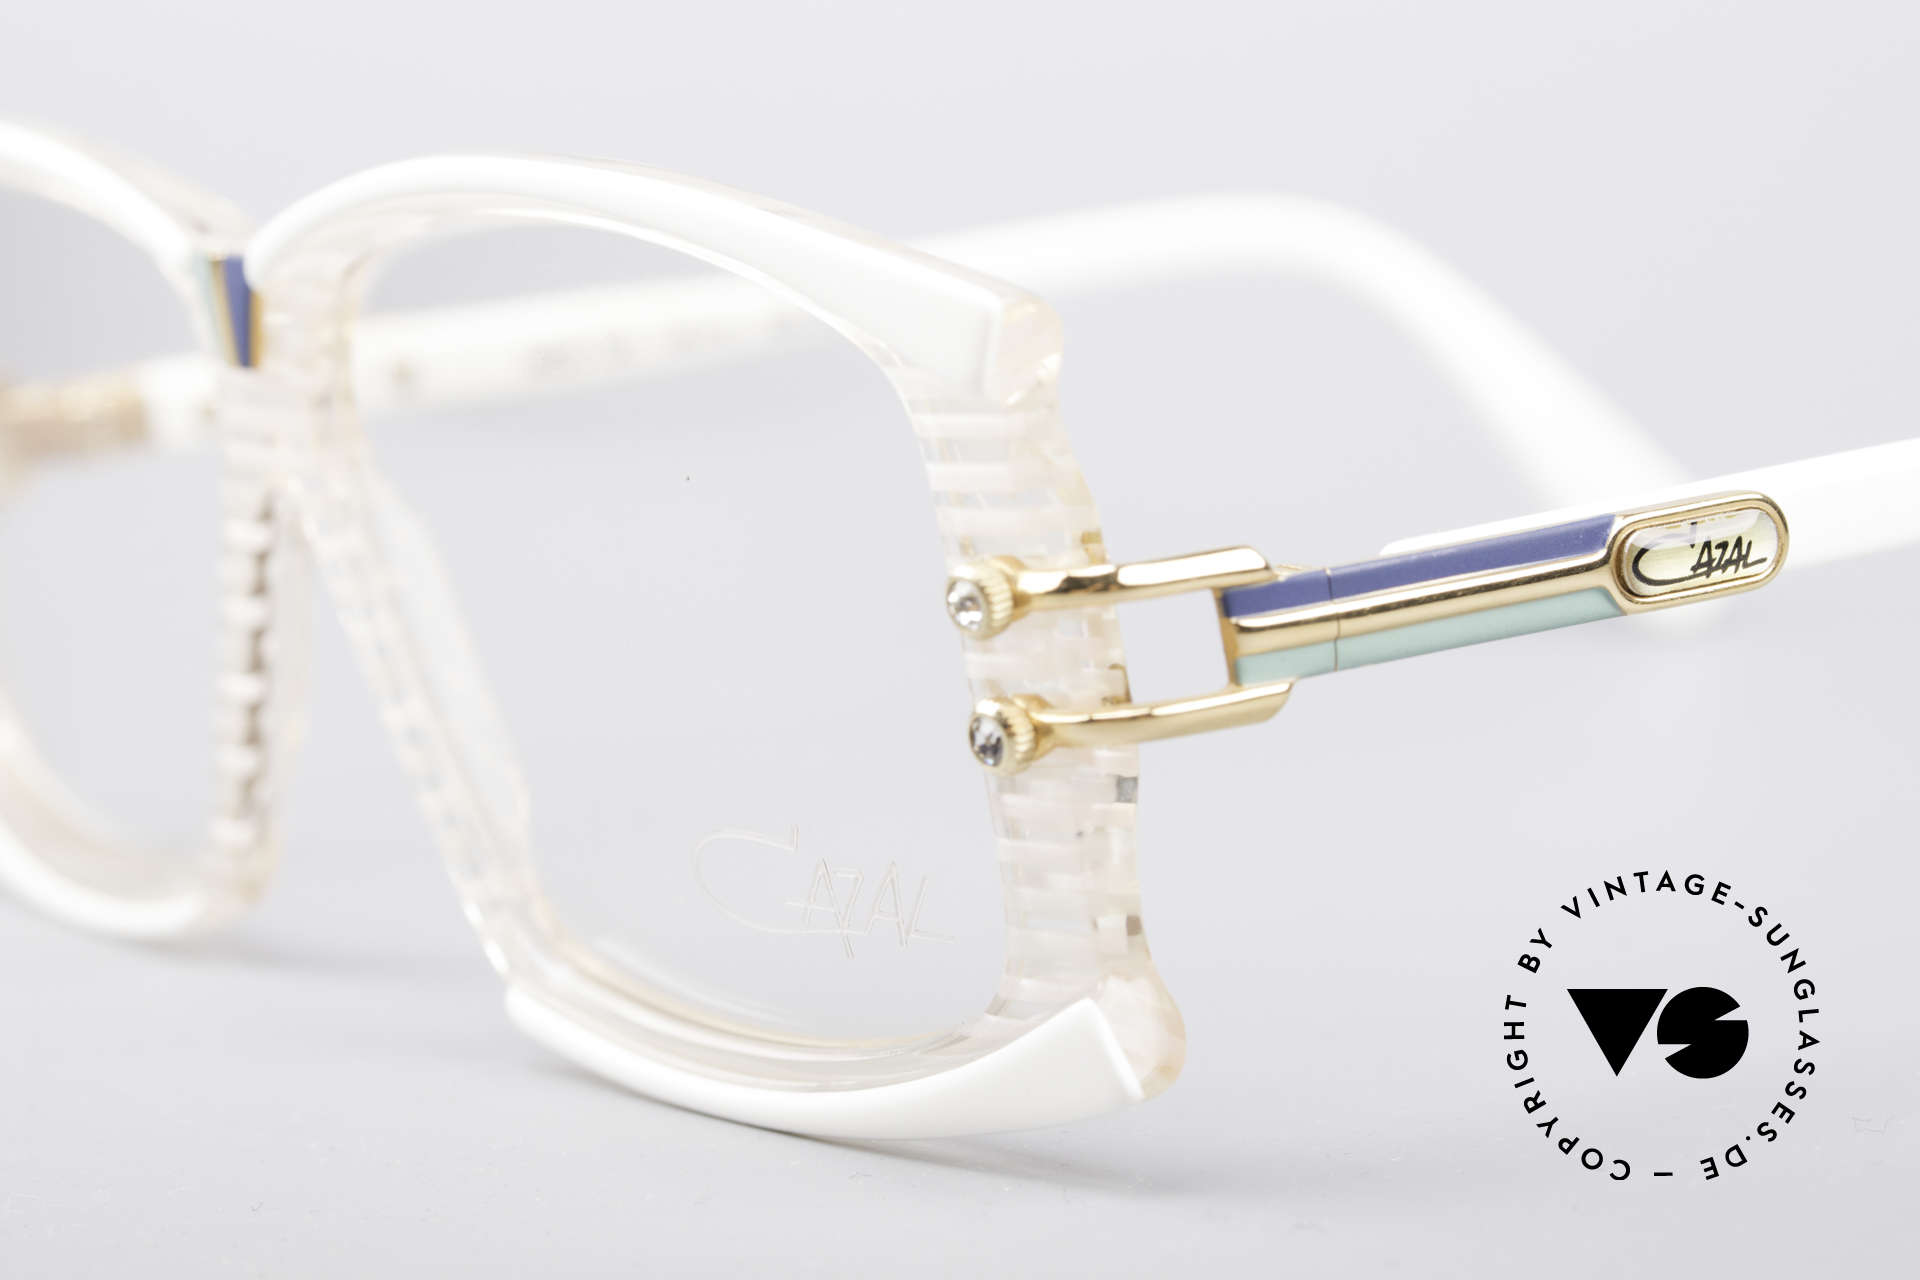 Cazal 195 80's Hip Hop Glasses, ornamental srews with rhinestone appliqué on temples, Made for Women